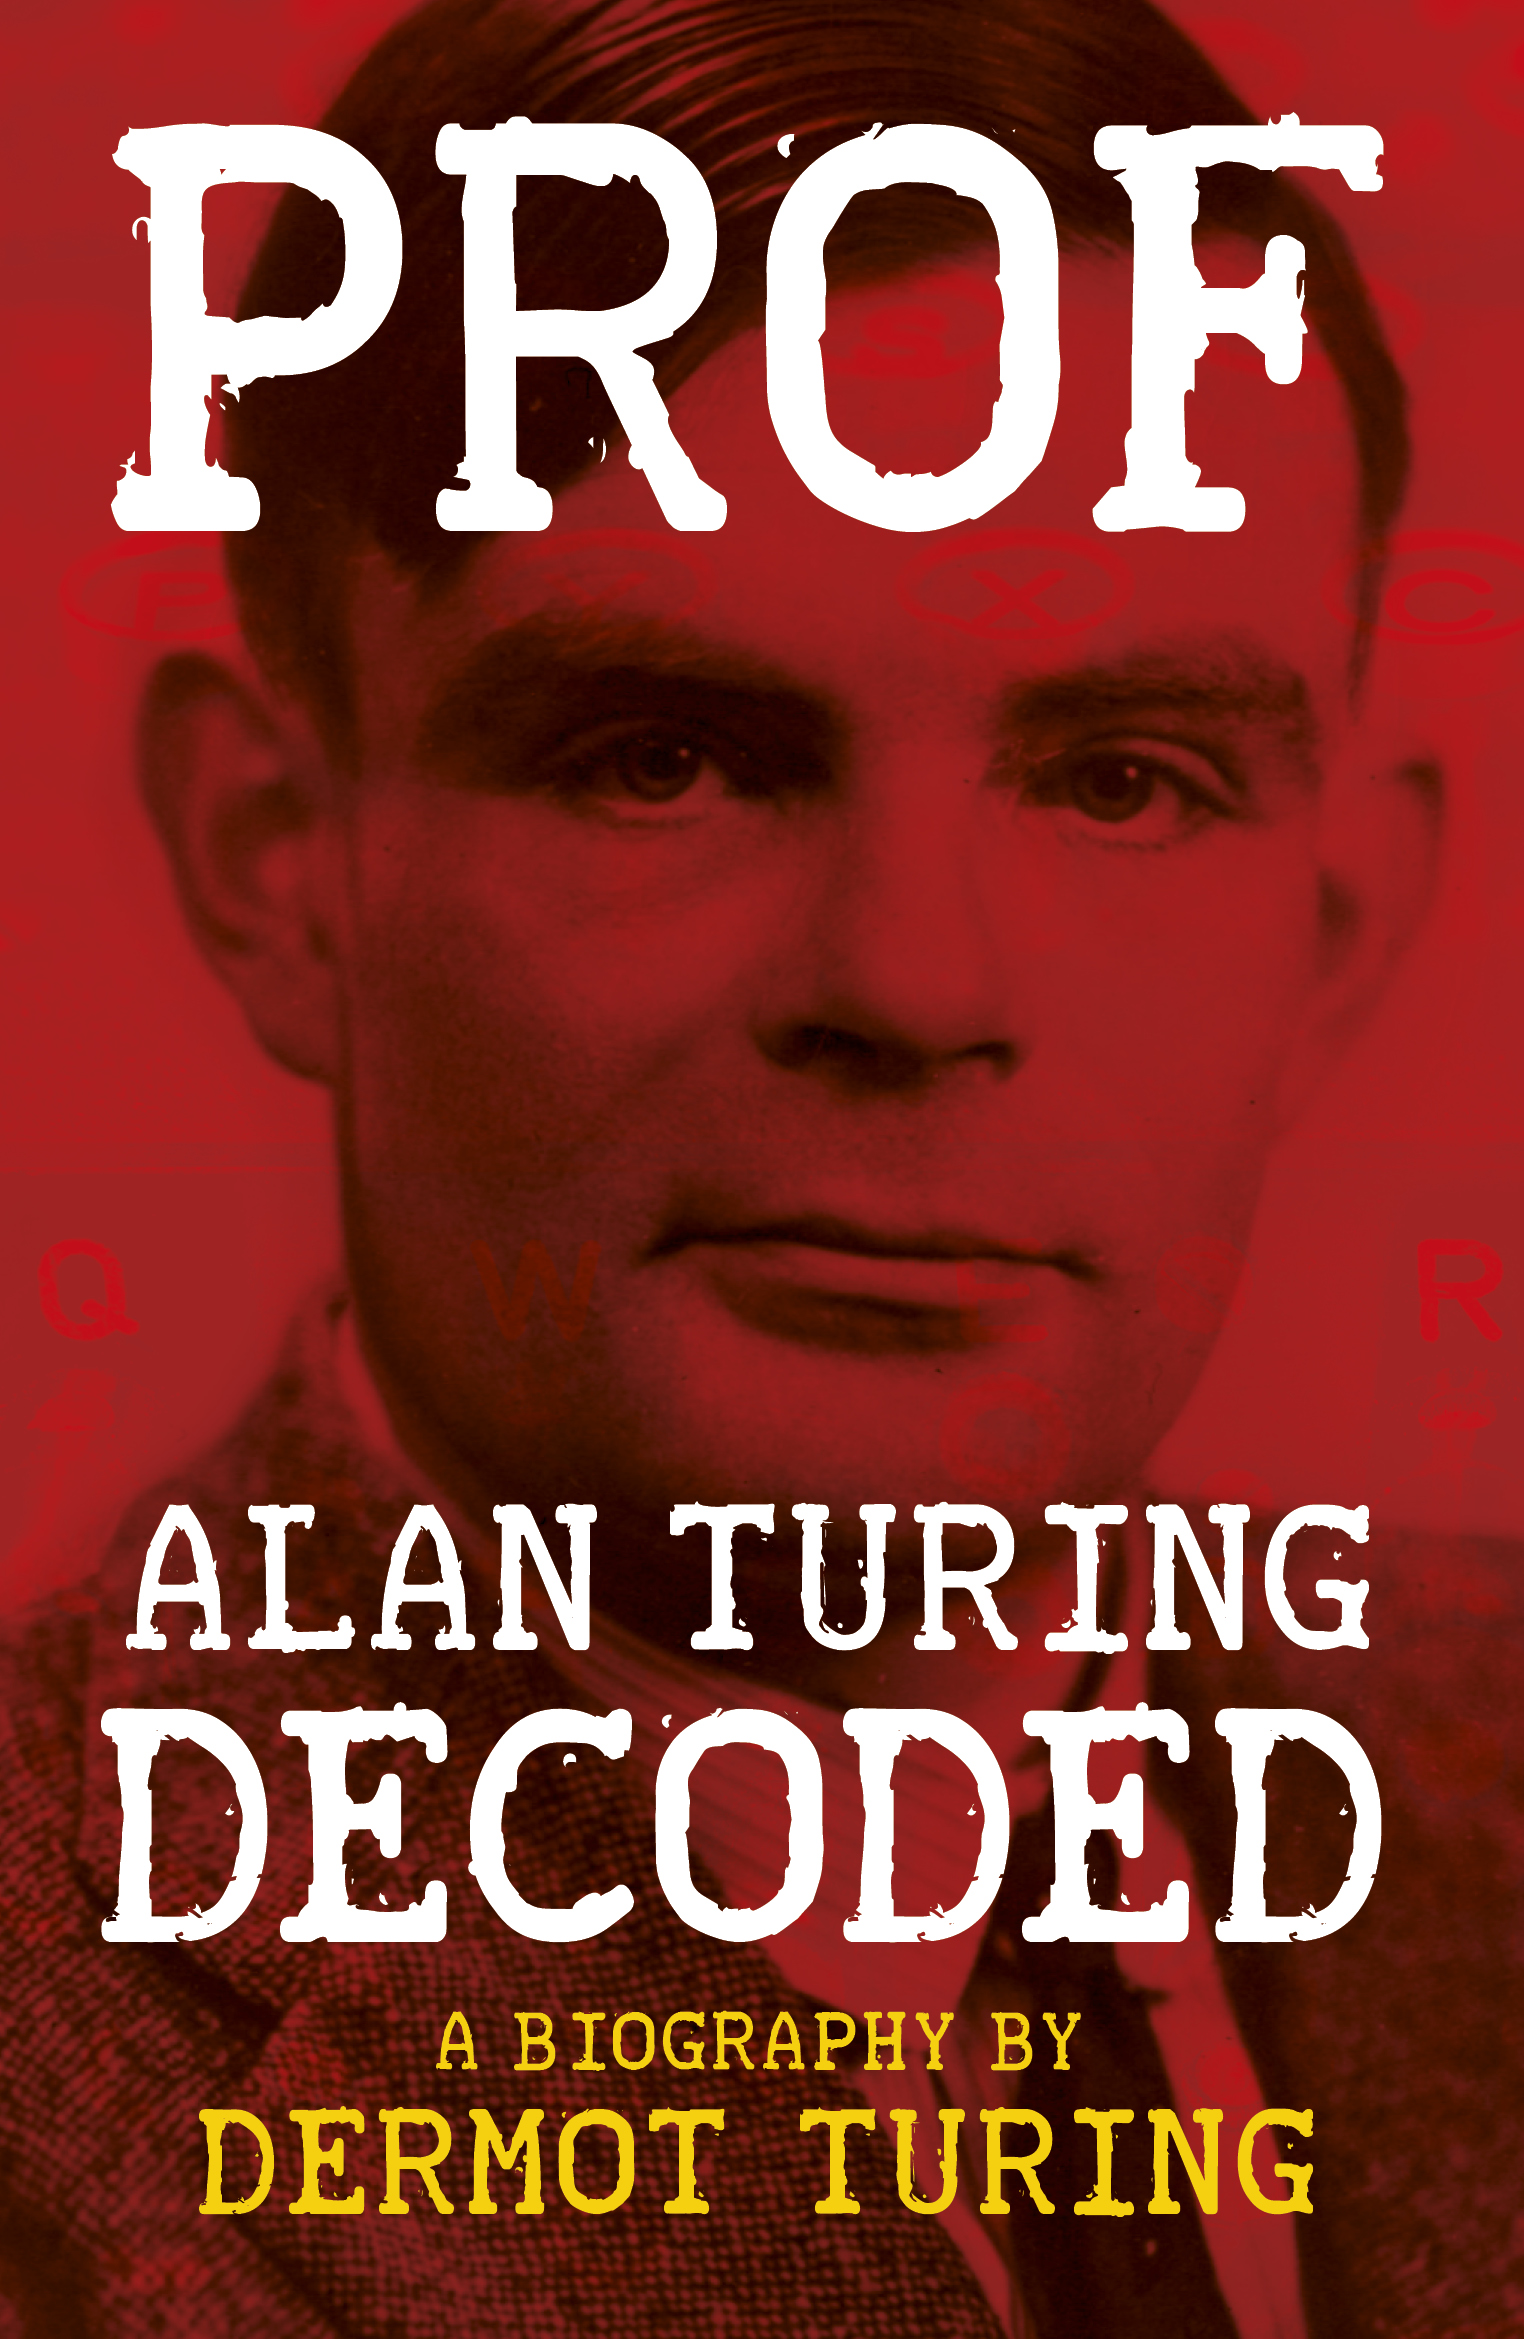 Prof: Alan Turing Decoded